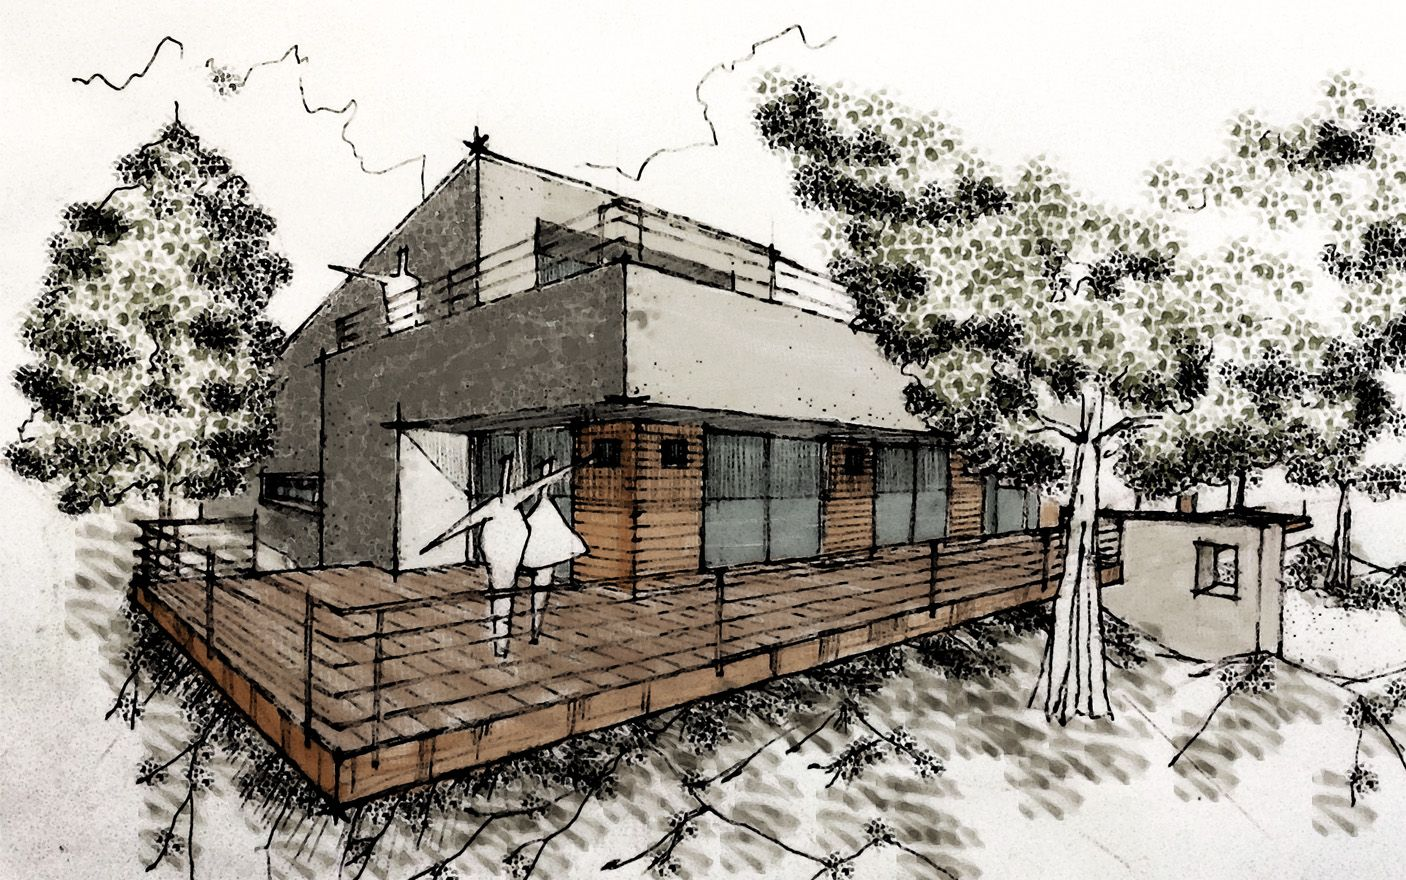 Architect Design Sketches new passive design | green architecture | pinterest | sketches